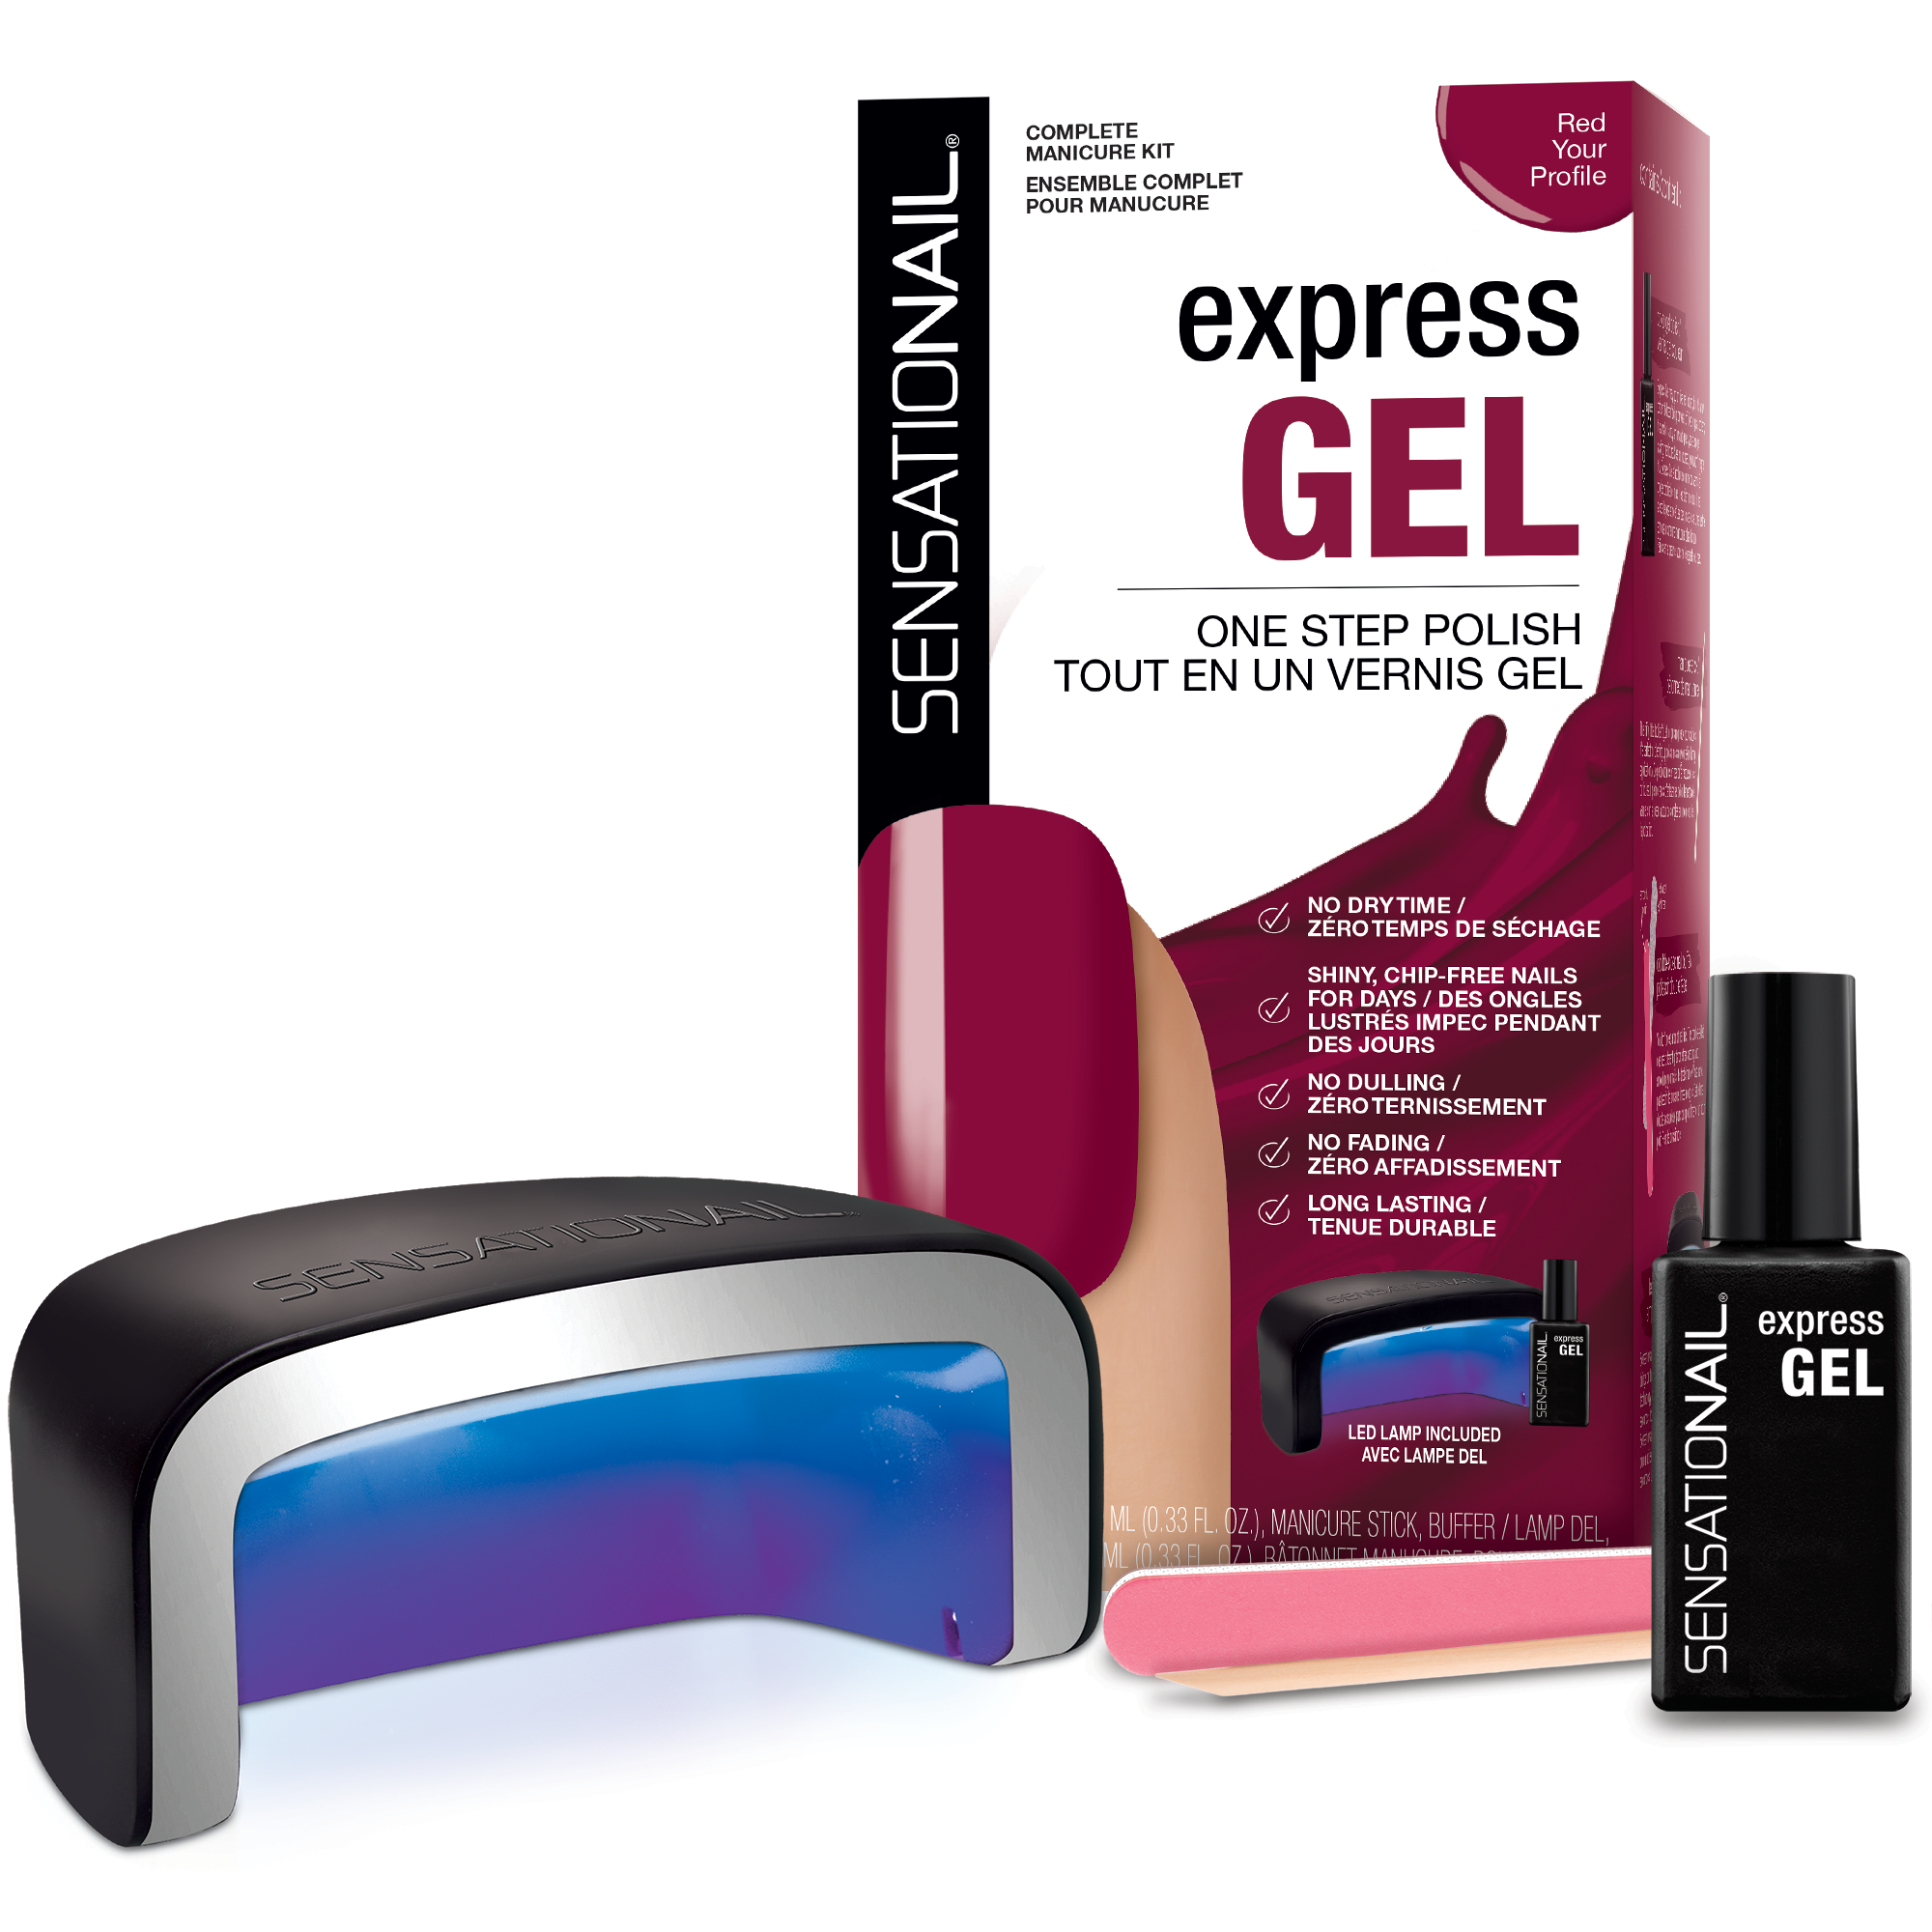 "SensatioNail Express Gel Nail Polish Starter Kit ""Red Your Profile"", Red, 4 pc (incl LED Lamp)"